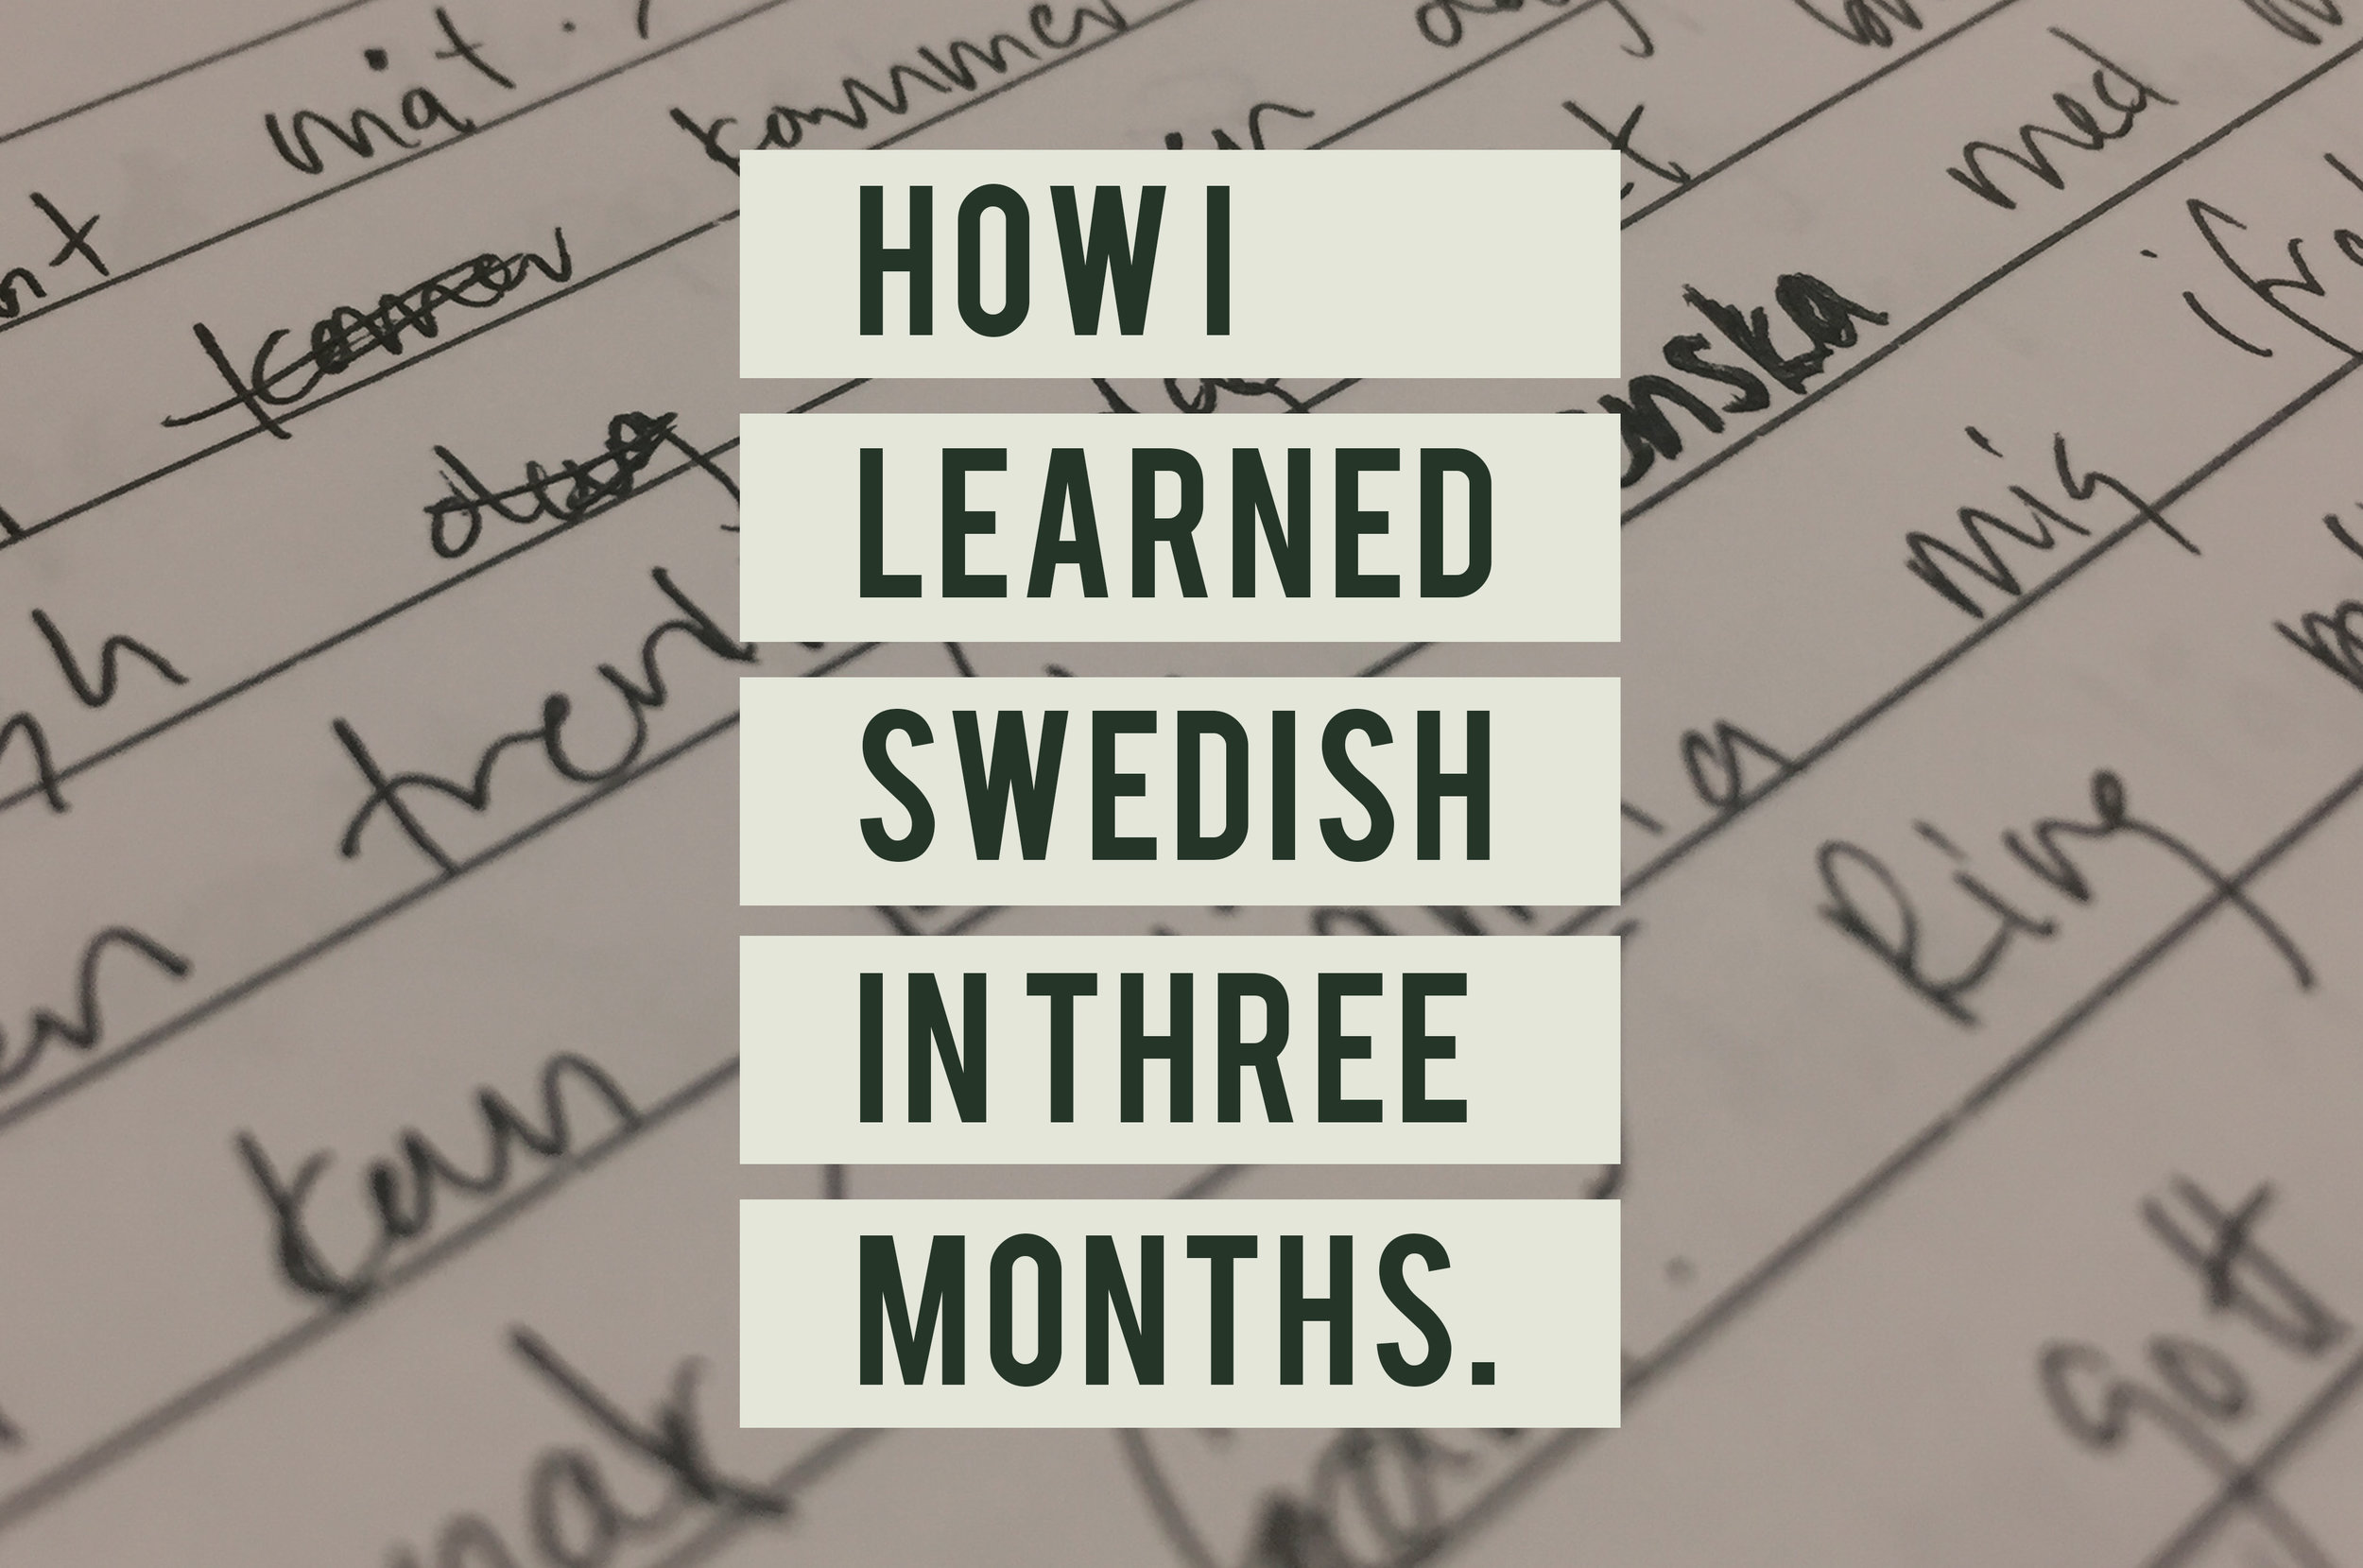 How I learned Swedish in three months.jpg